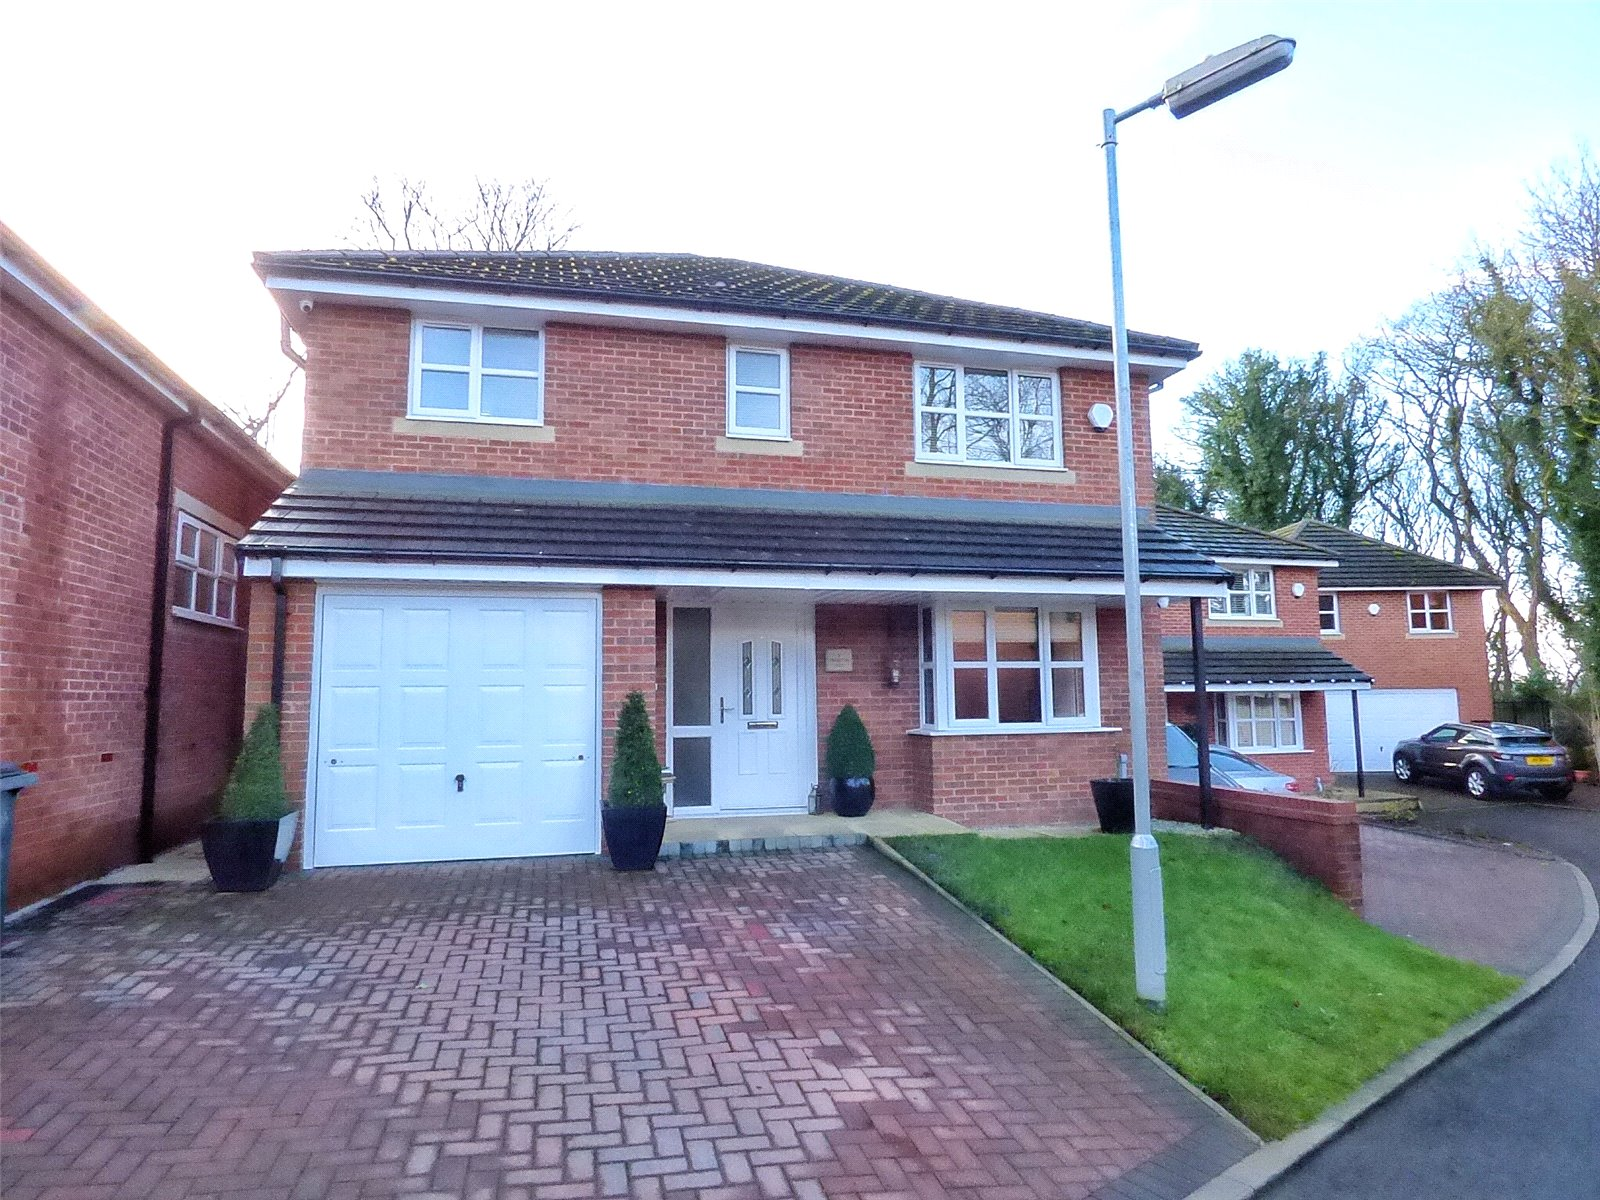 4 Bedrooms Detached House for sale in Crompton Hall, Shaw, Oldham, OL2